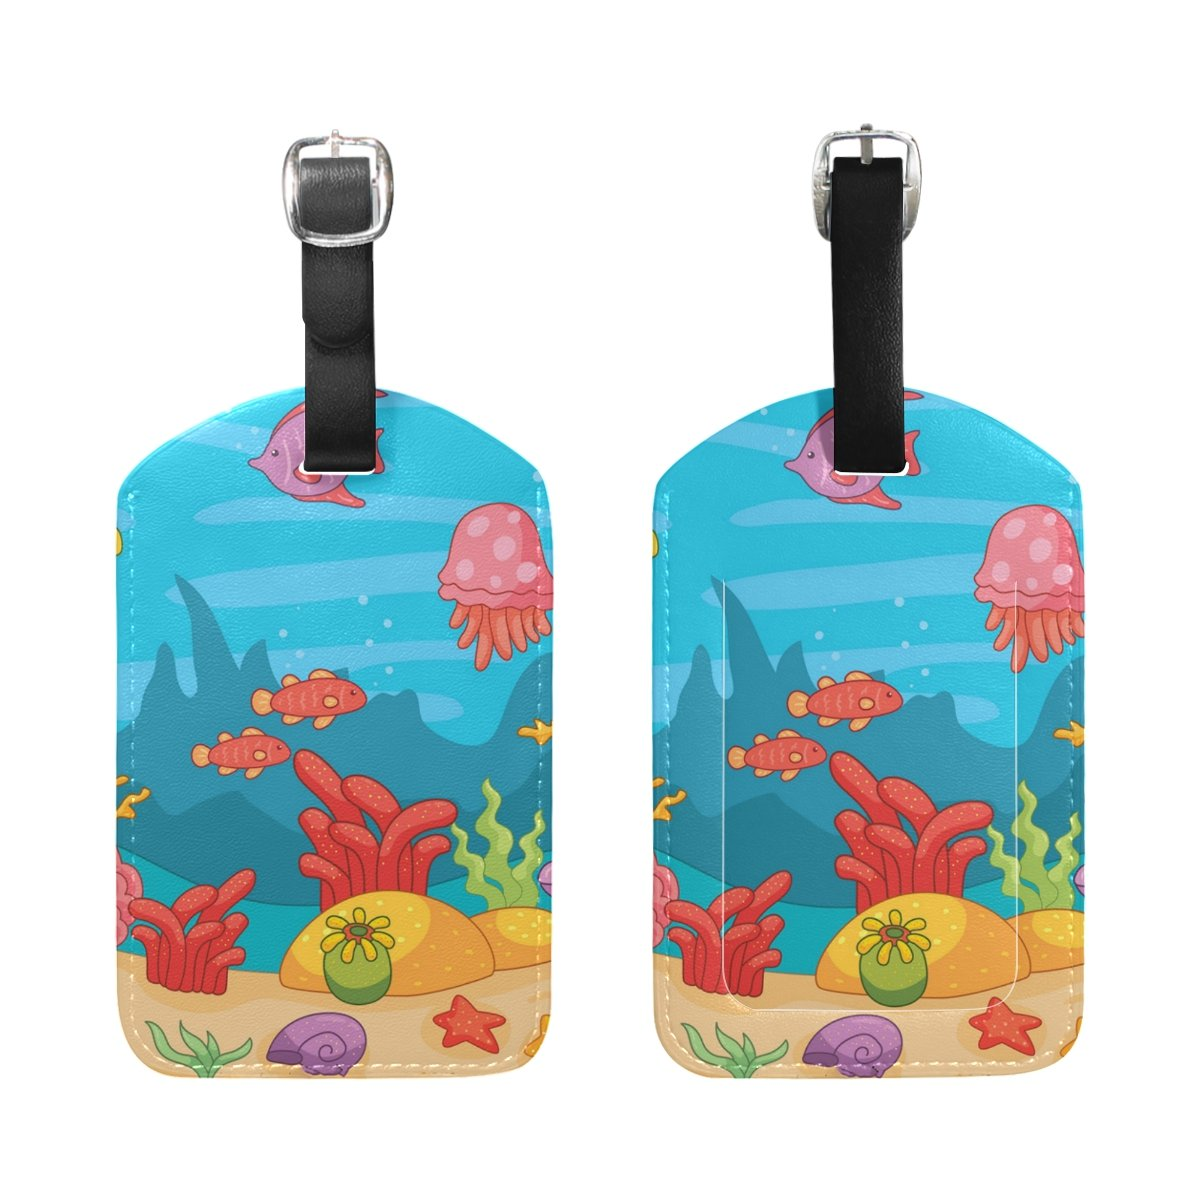 Saobao Travel Luggage Tag Underwater Animals PU Leather Baggage Travel ID